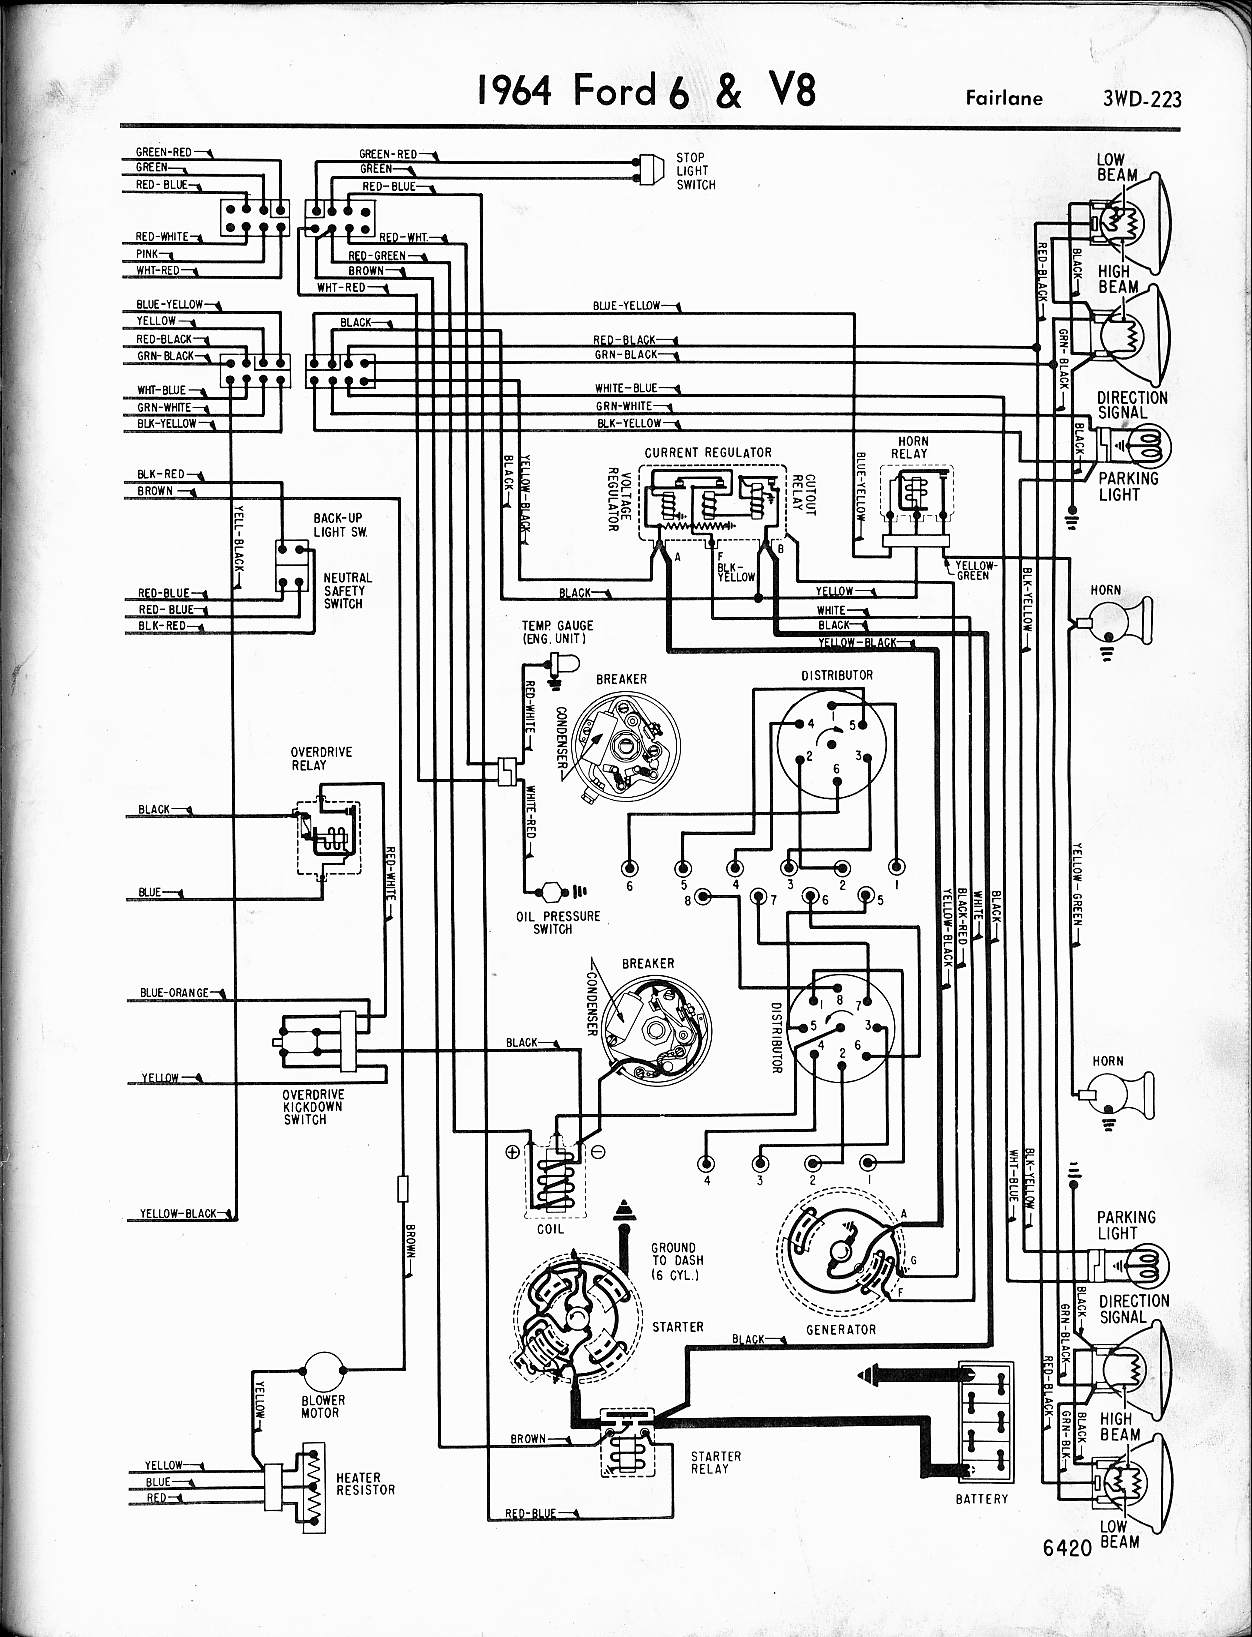 MWire5765 223 57 65 ford wiring diagrams Ford E 350 Wiring Diagrams at panicattacktreatment.co